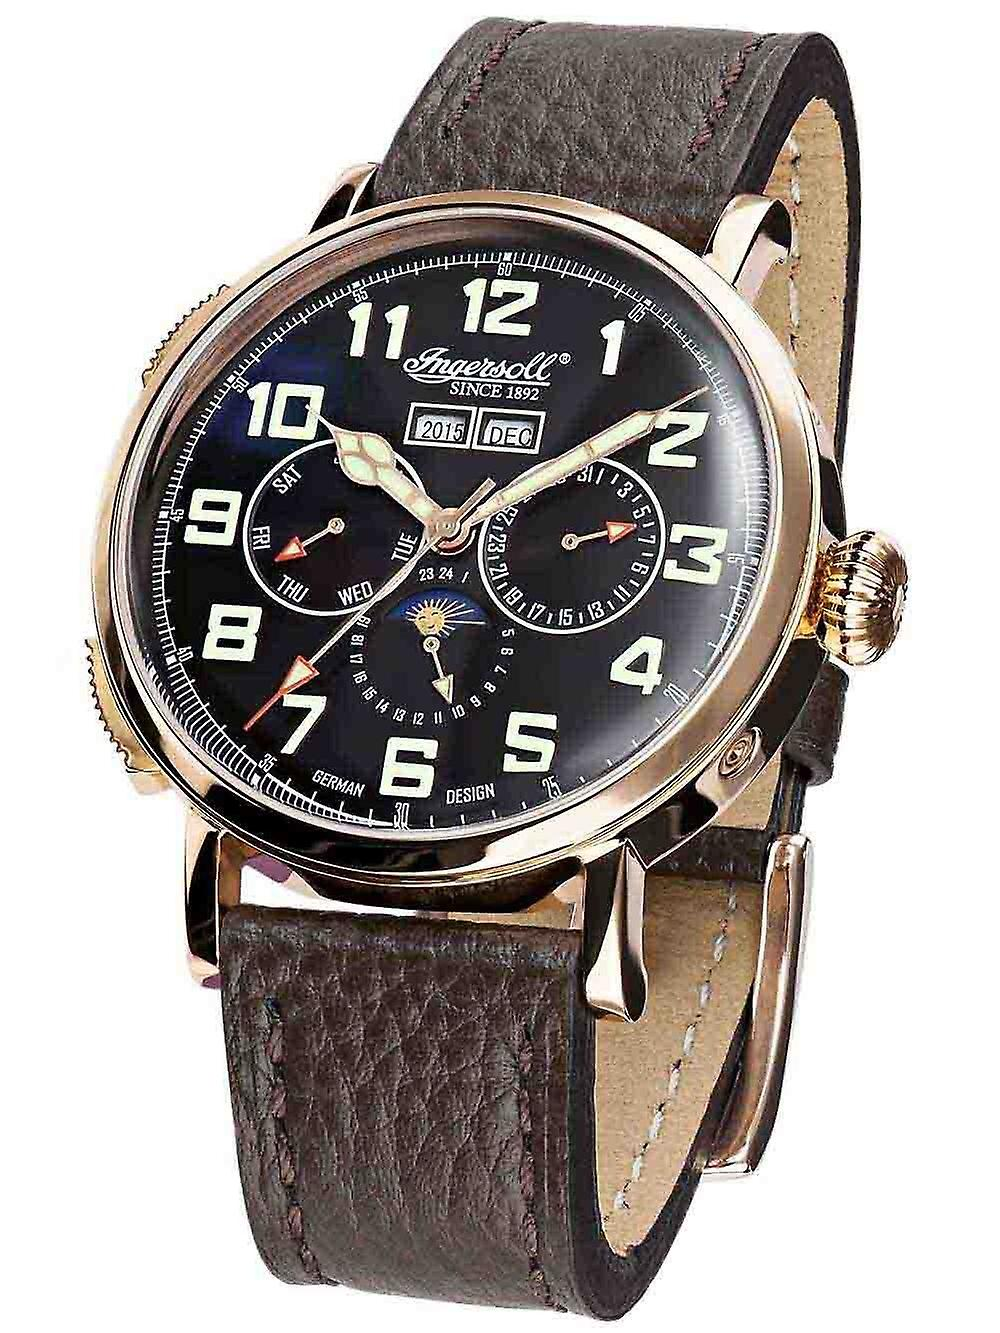 The IN1917RBK automatic men's Watch 44mm